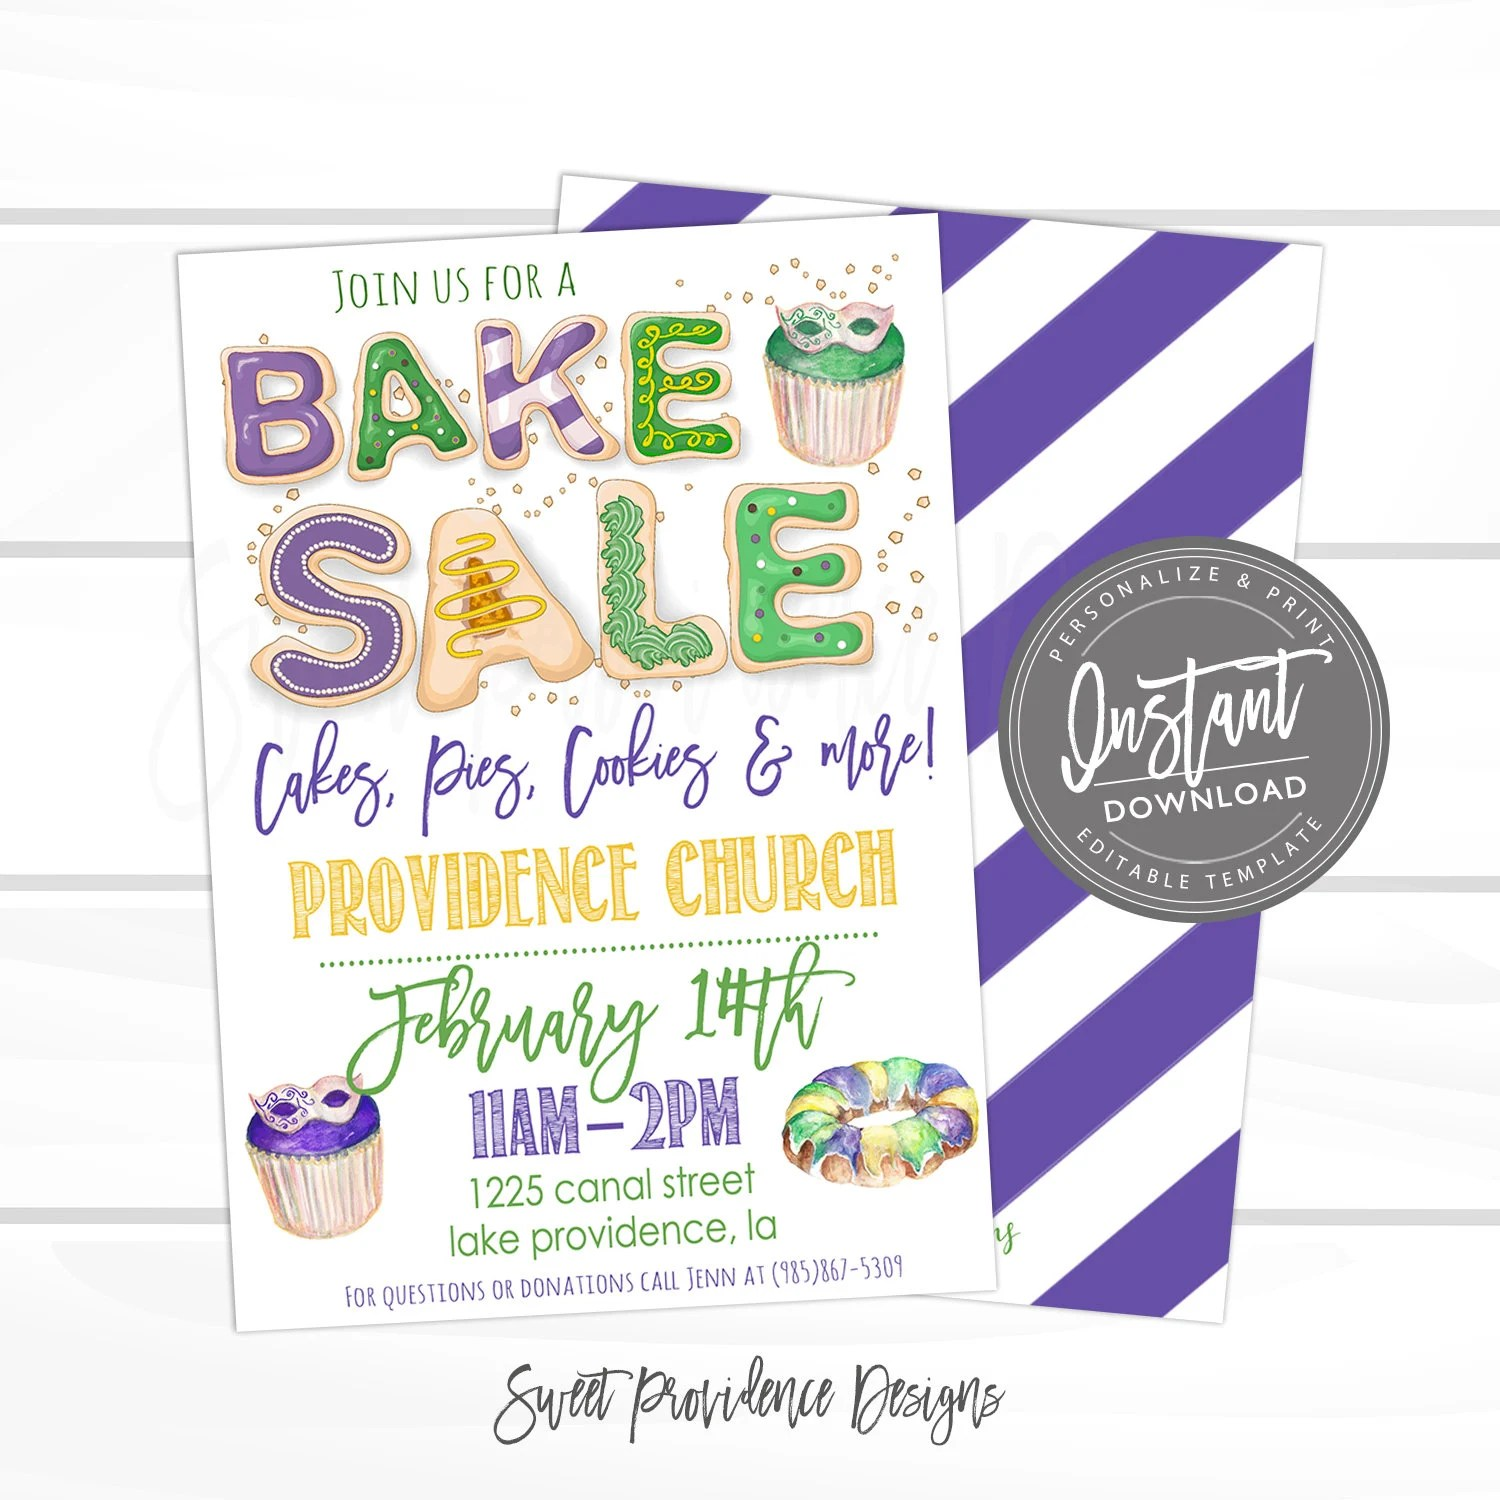 Mardi Gras Bake Sale Flyer, Bake Sale Flyer, Cookies, holiday